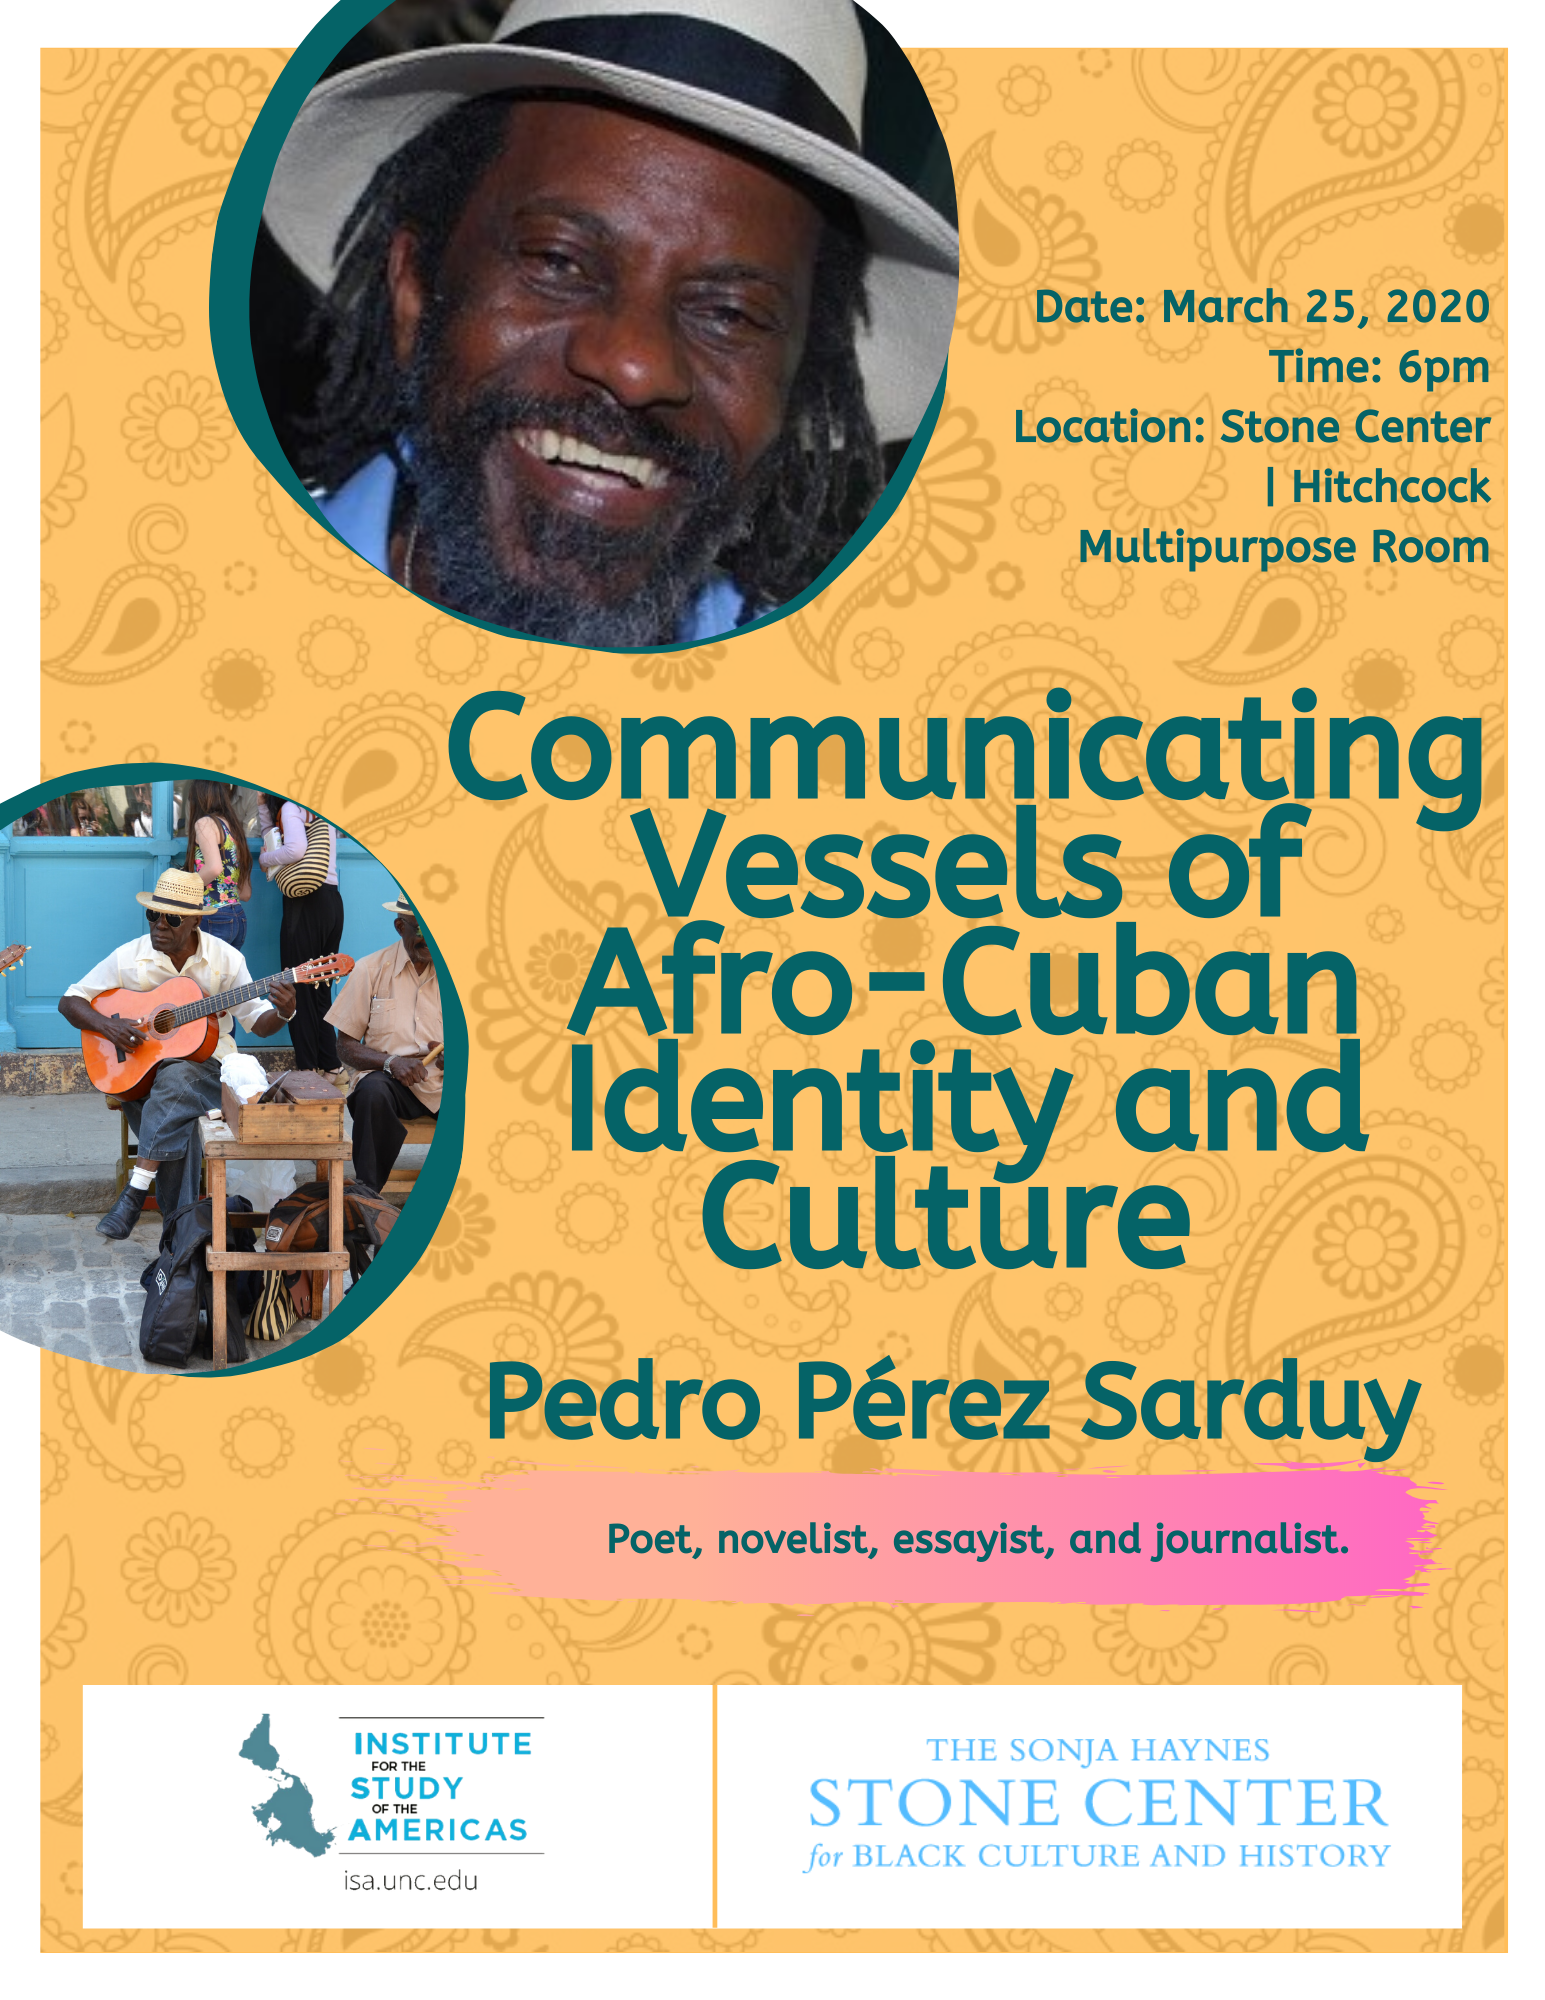 Communicating Vessels of Afro-Cuban Identity and Culture